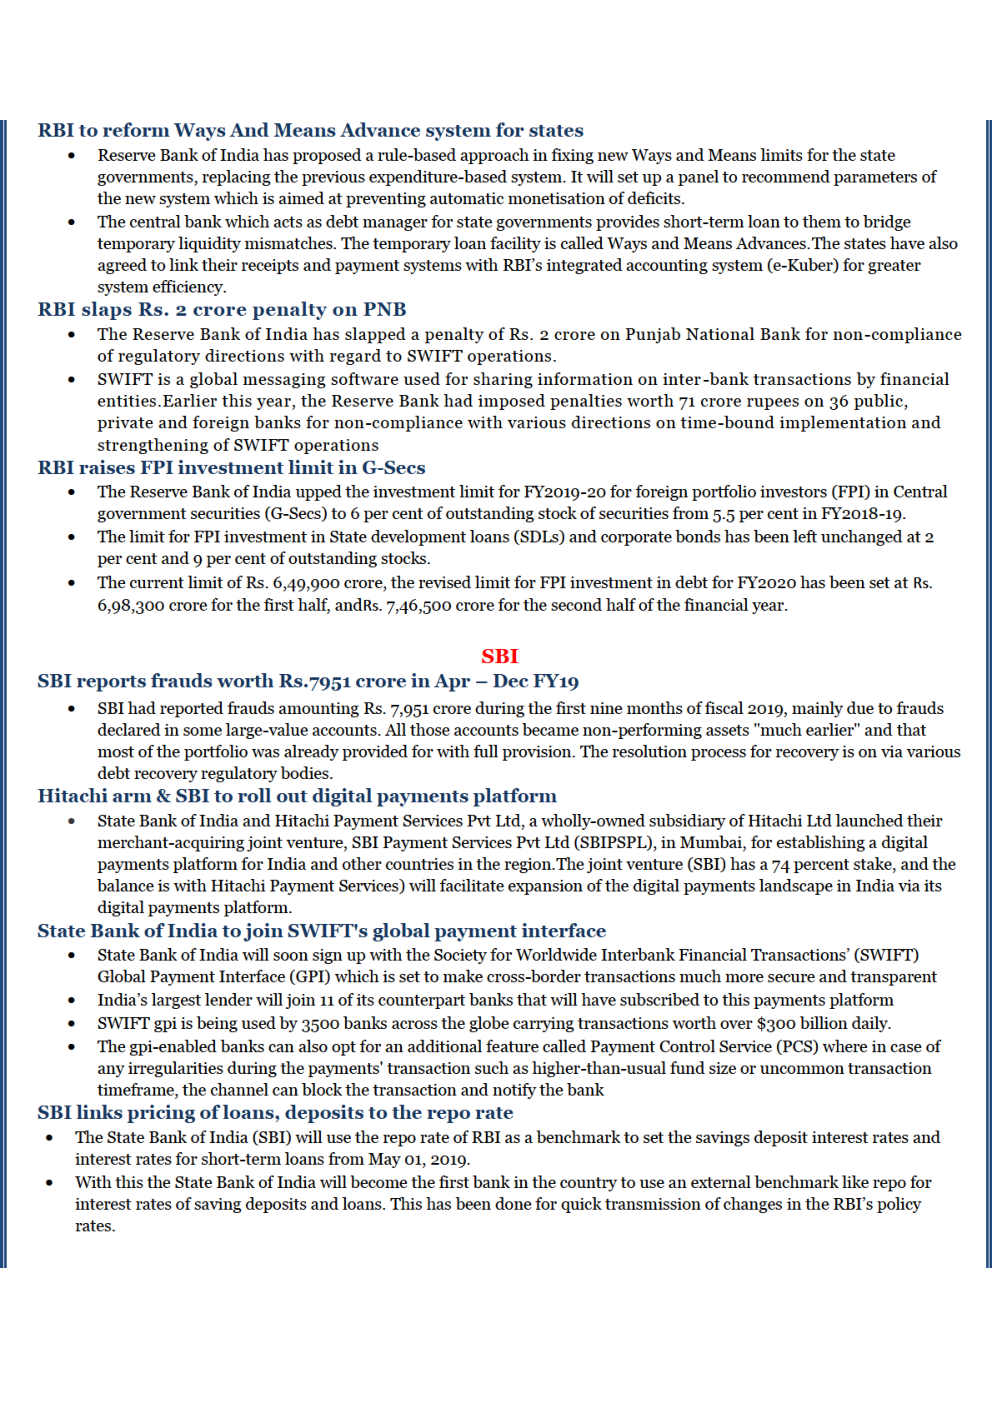 GK And Current Affairs March 2019 - Page 5